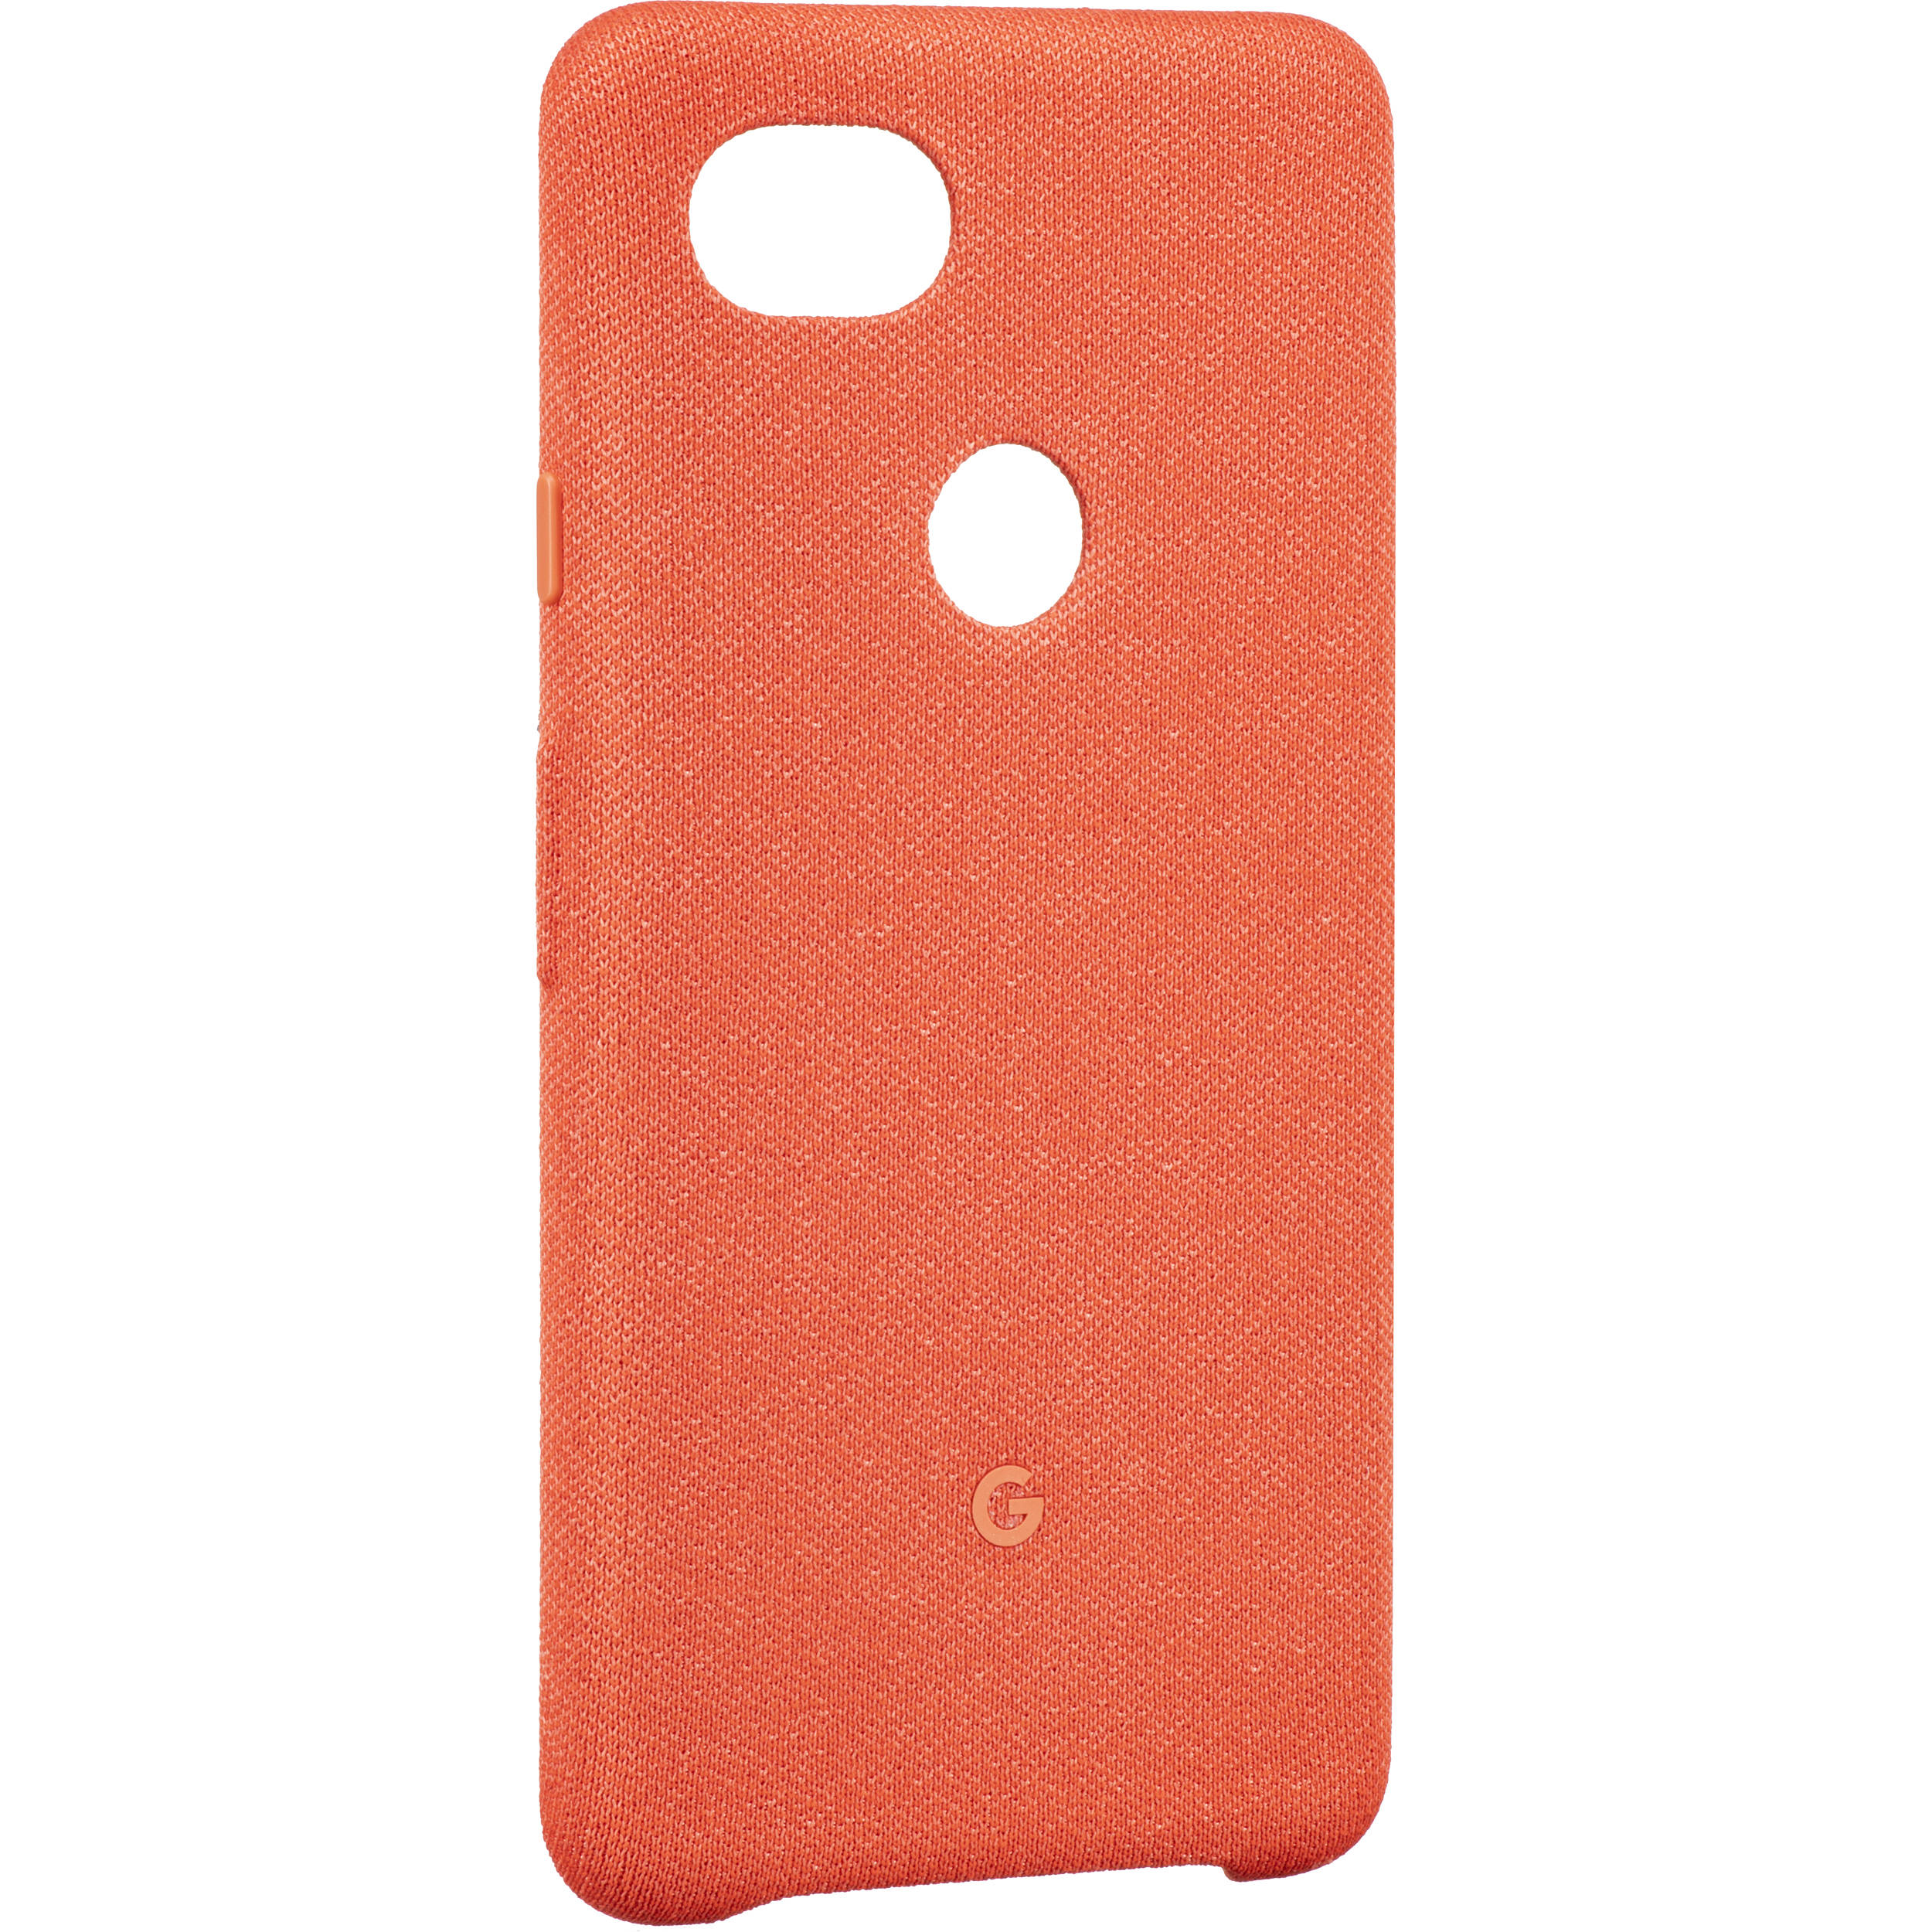 new product 42842 a6ff1 Google Pixel 2 XL Fabric Case (Coral)